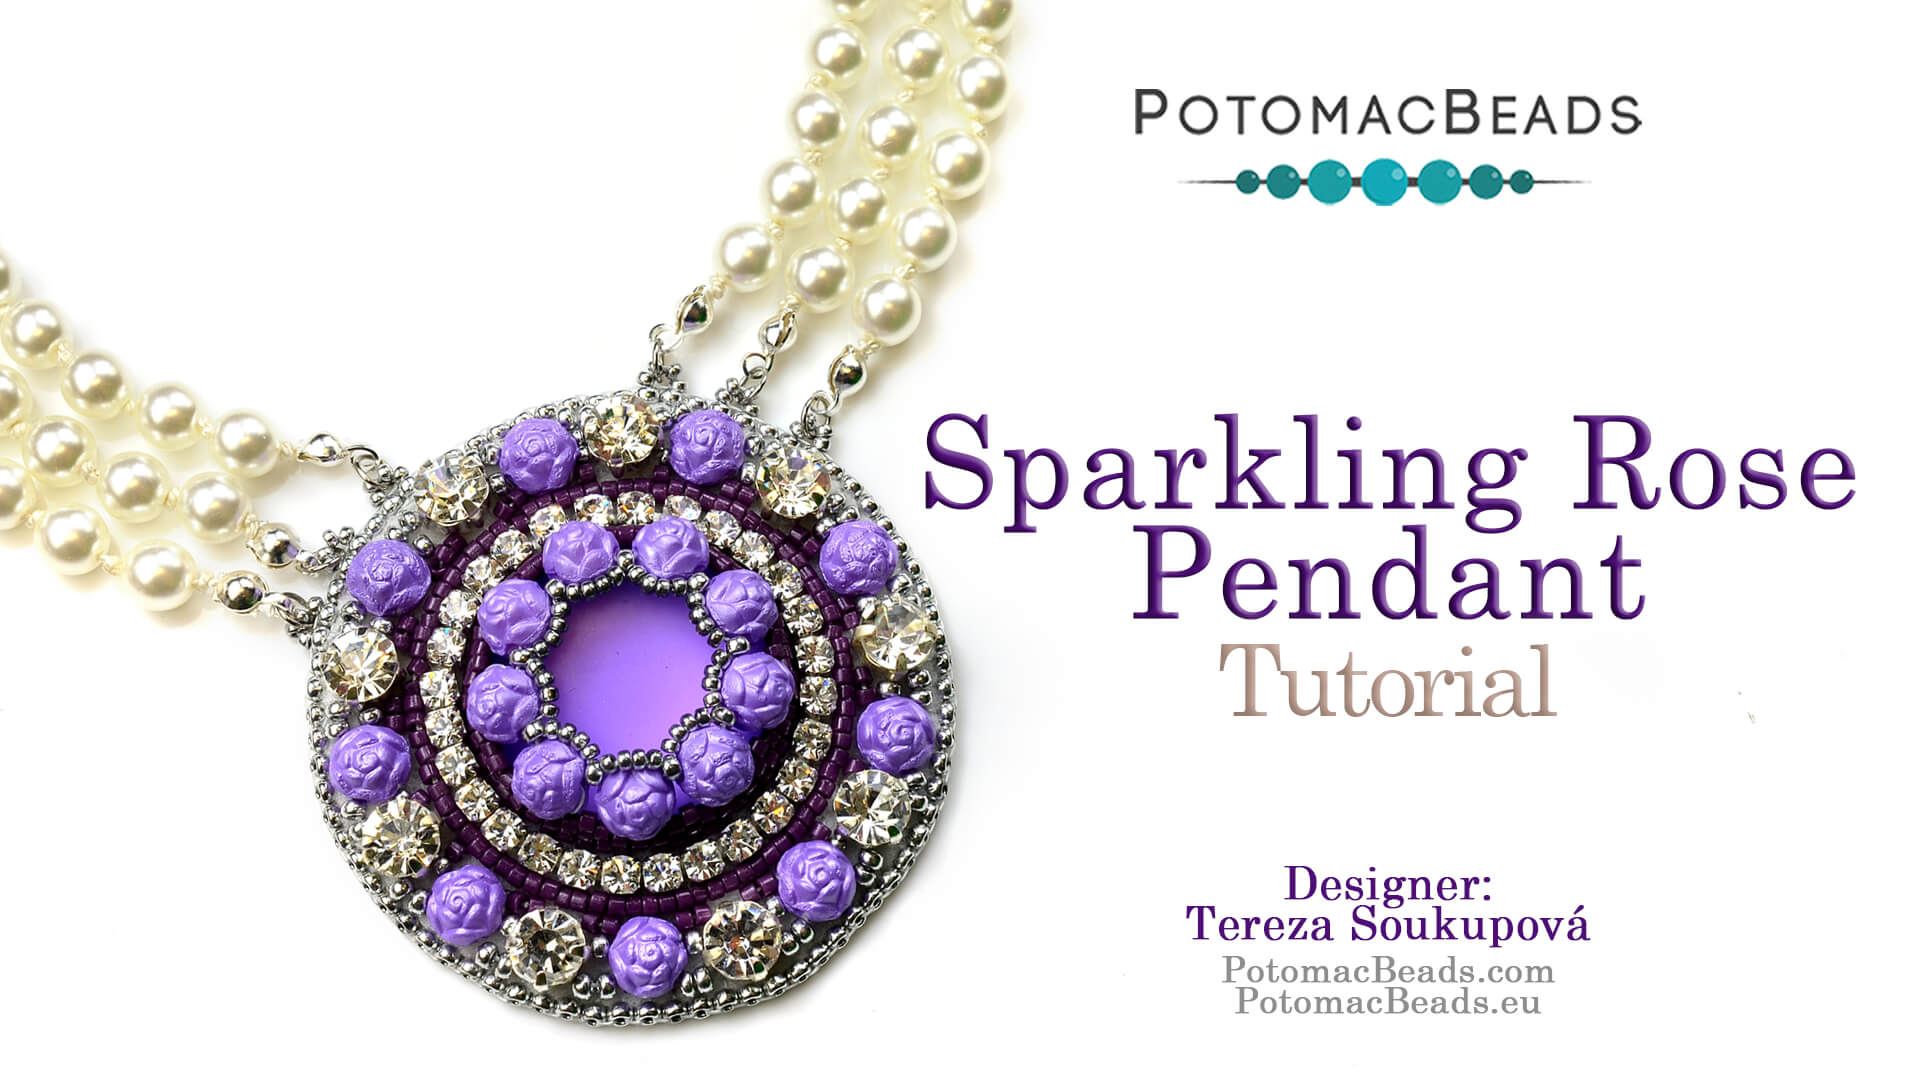 How to Bead Jewelry / Videos Sorted by Beads / Pearl Videos (Czech, Freshwater, Potomac Pearls) / Sparkling Rose Pendant Tutorial